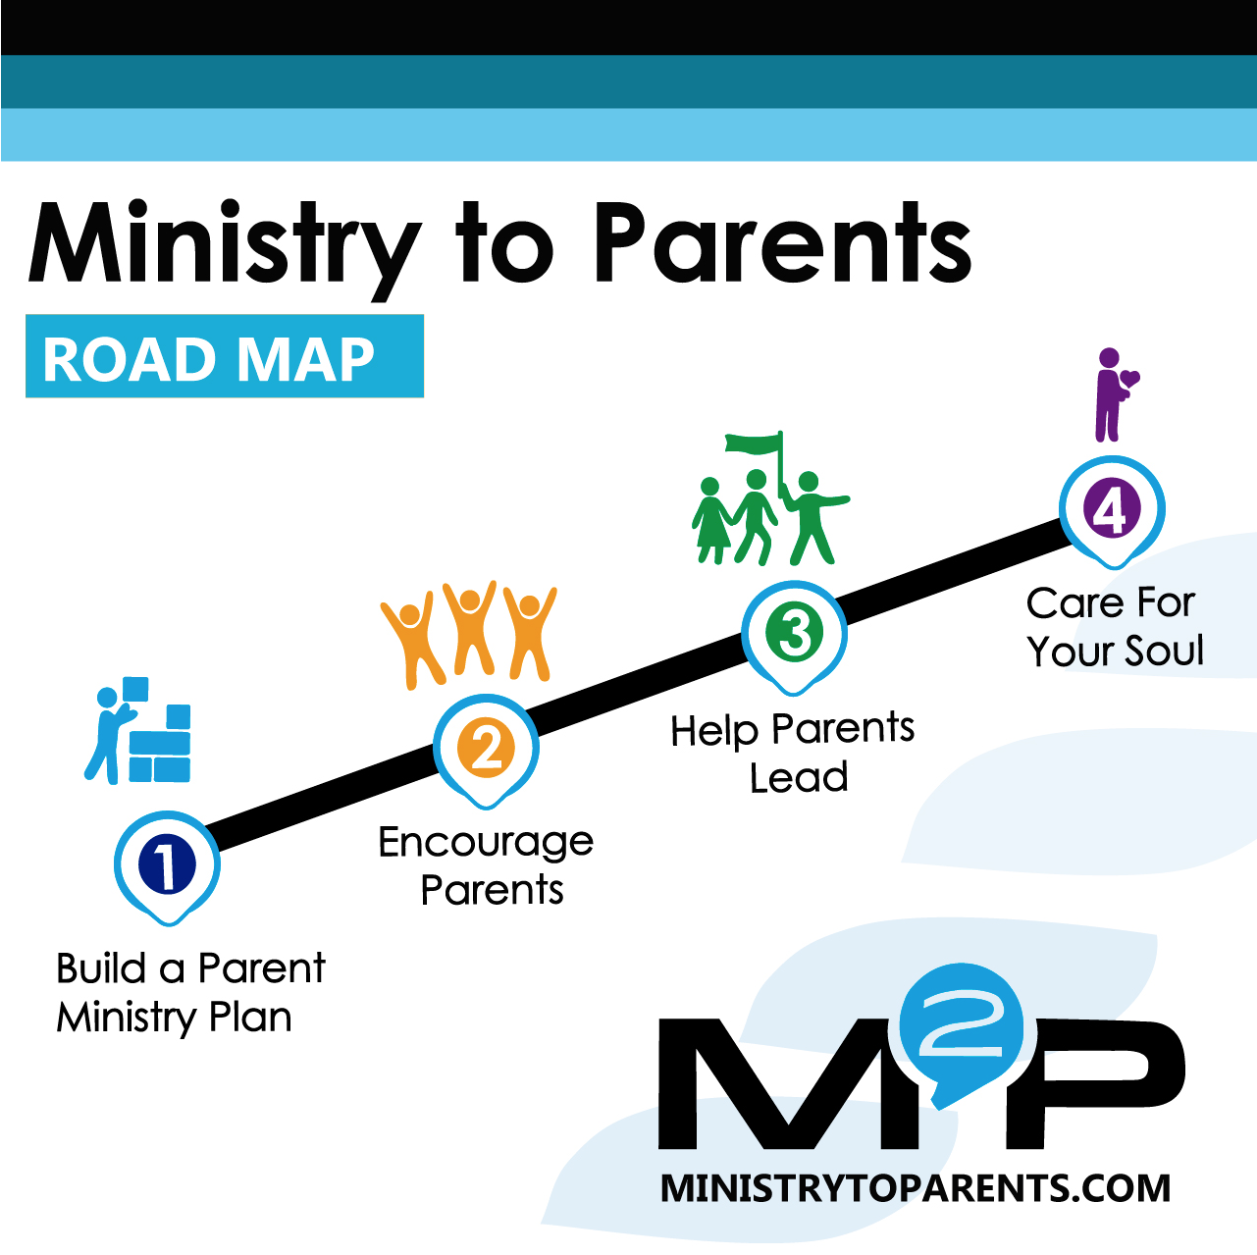 ministry to parents road map